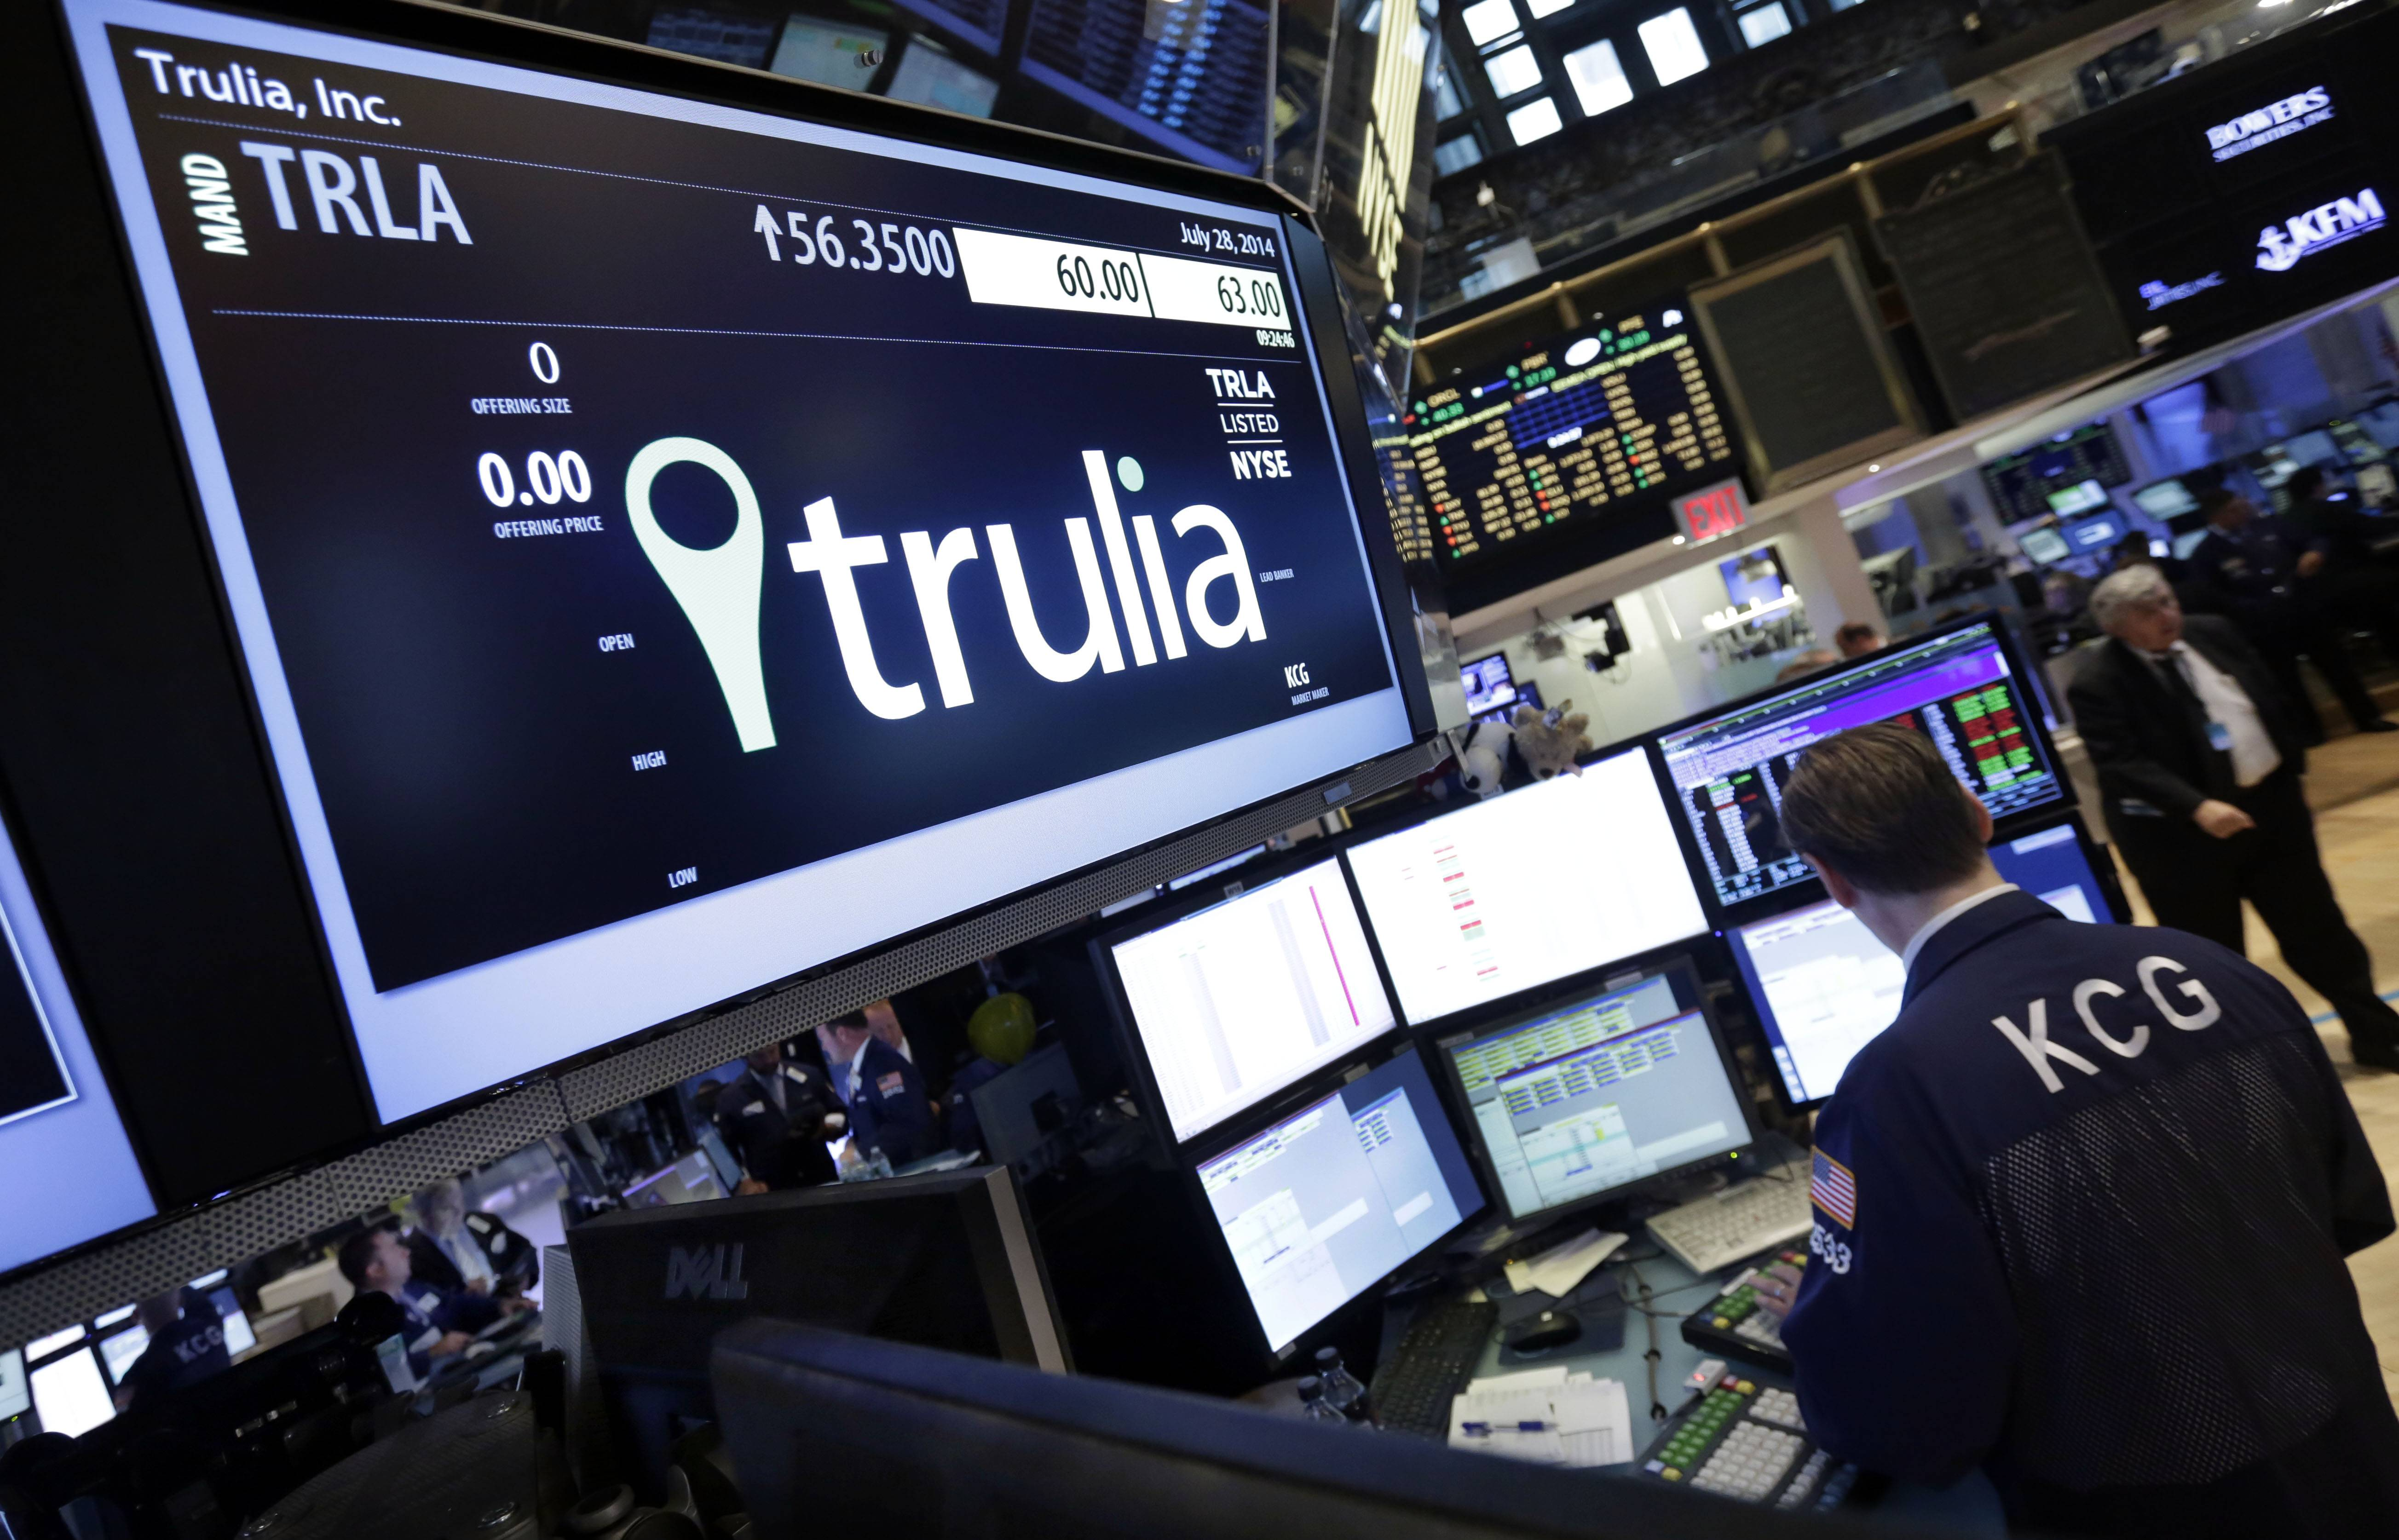 A specialist woks at the post that handles Trulia on the floor of the New York Stock Exchange.